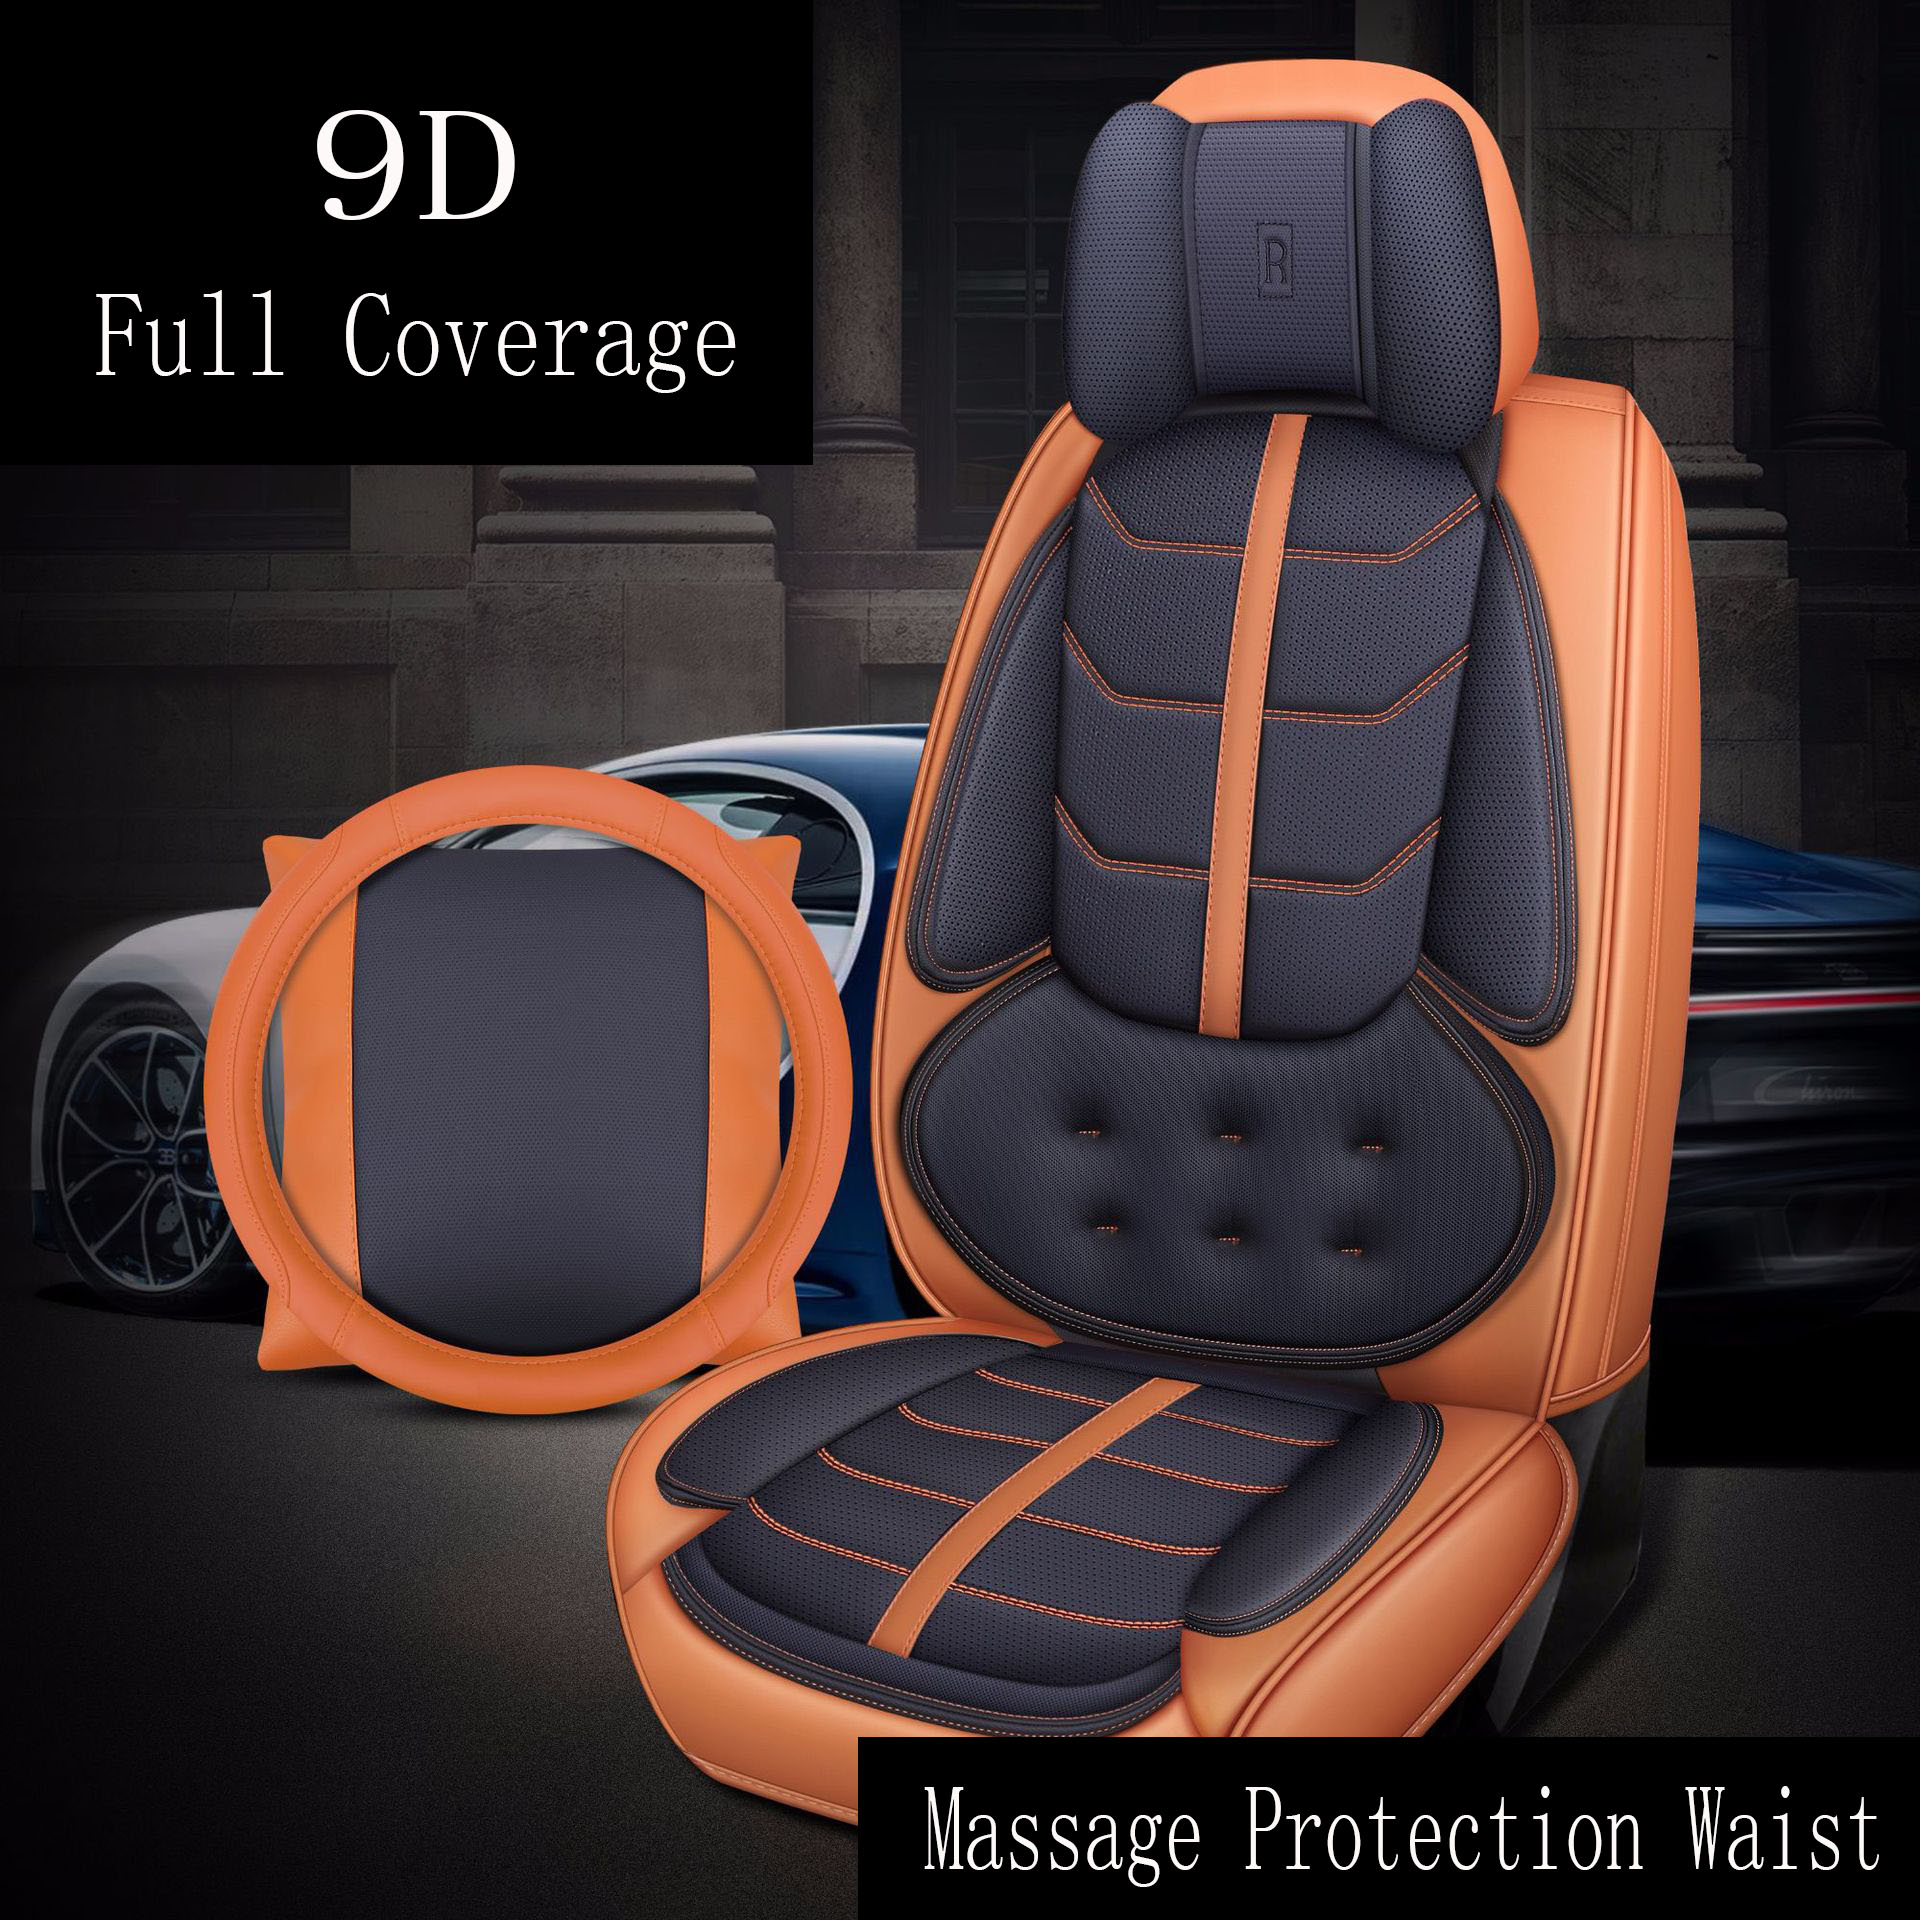 Car seat cover made for Toyota Highlander Land Cruiser 200 5D full cover car styling rugs carpet case liners (2007-)Car seat cover made for Toyota Highlander Land Cruiser 200 5D full cover car styling rugs carpet case liners (2007-)